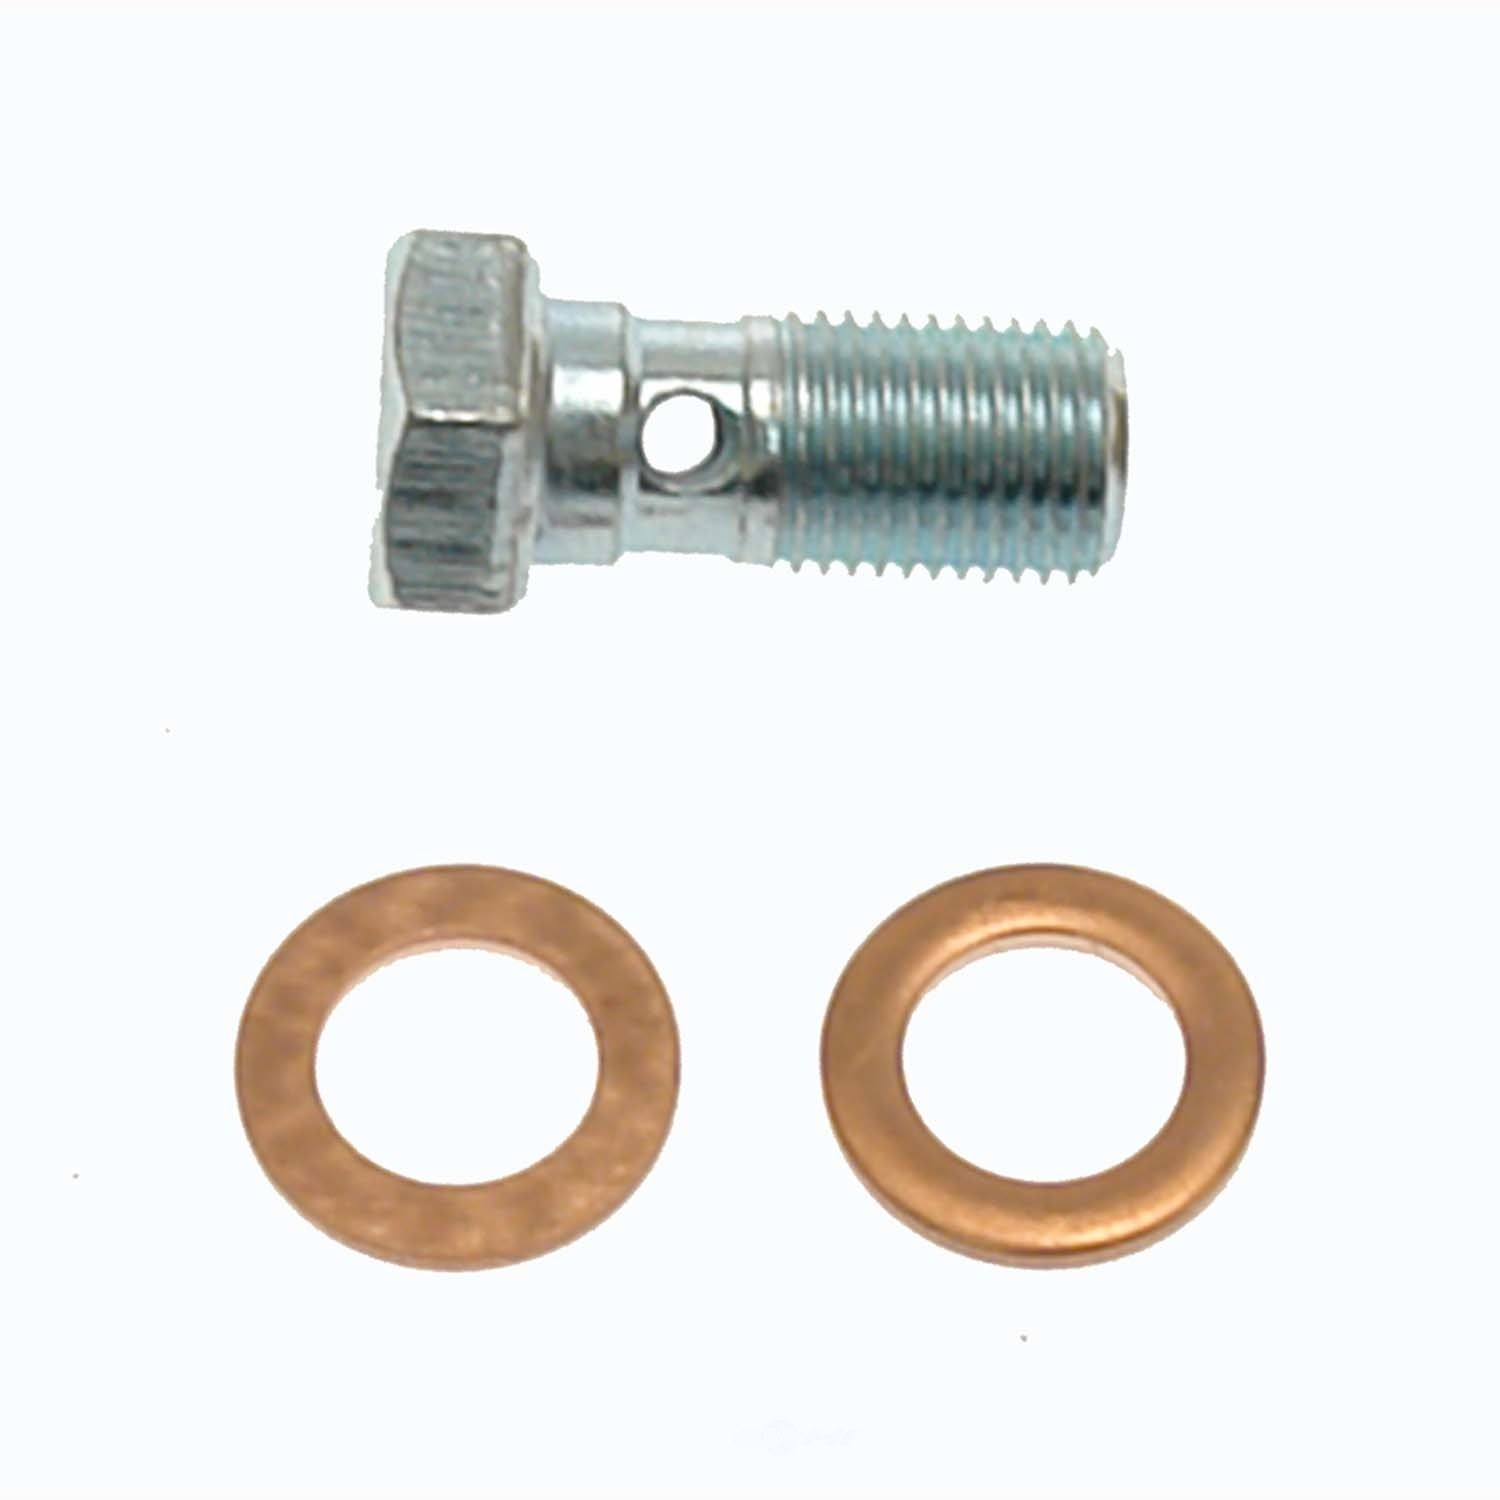 CARLSON QUALITY BRAKE PARTS - Brake Hydraulic Banjo Bolt (Rear) - CRL H9466-2